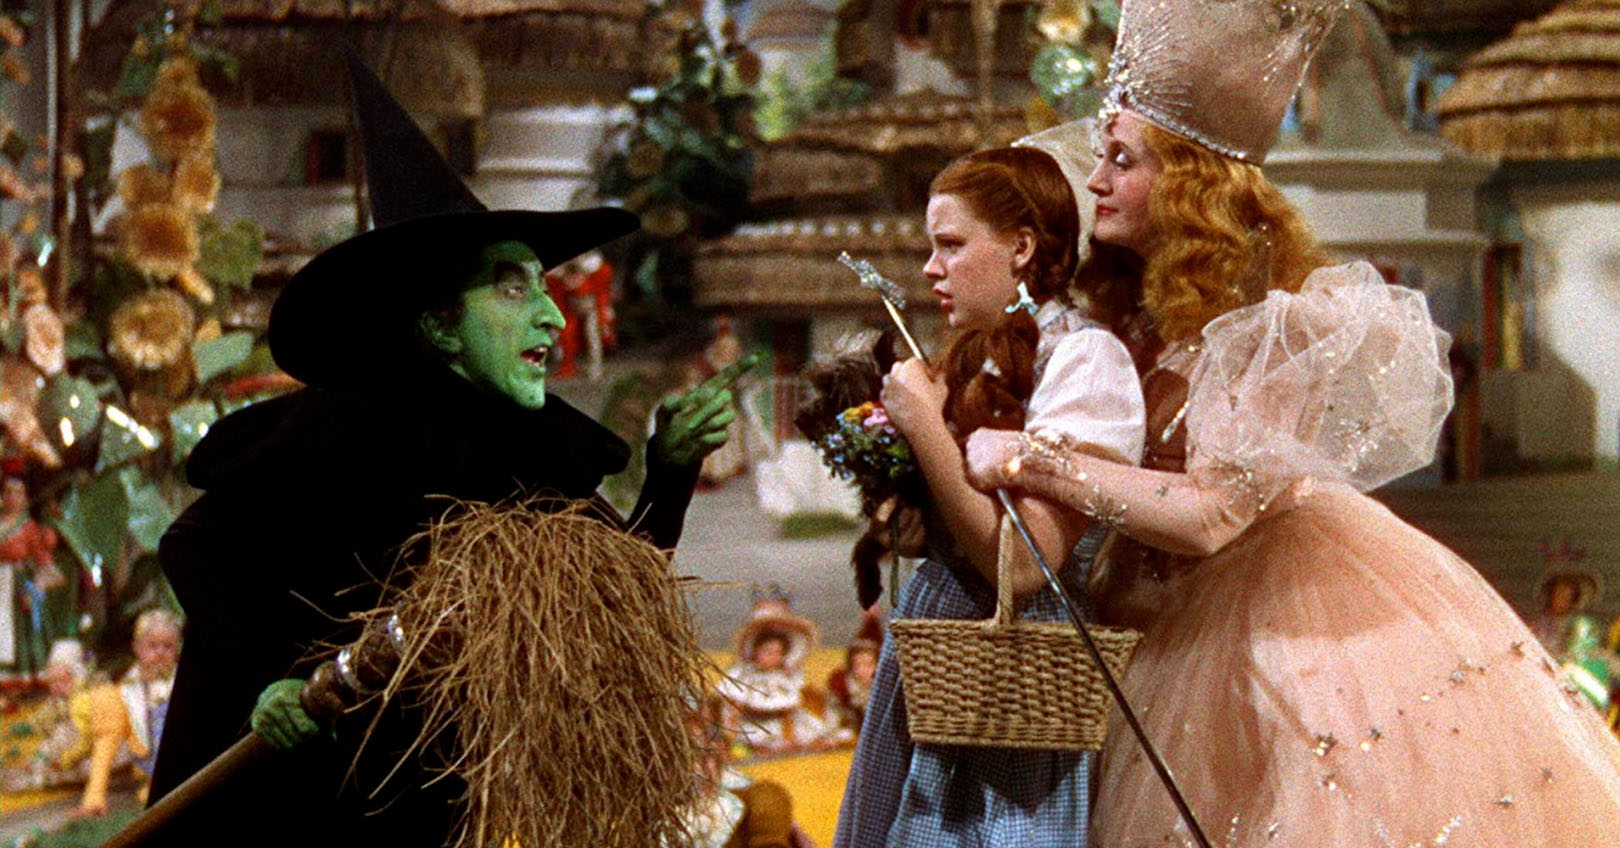 The Wizard of Oz - Margaret Hamilton, Judy Garland, and Billie Burke